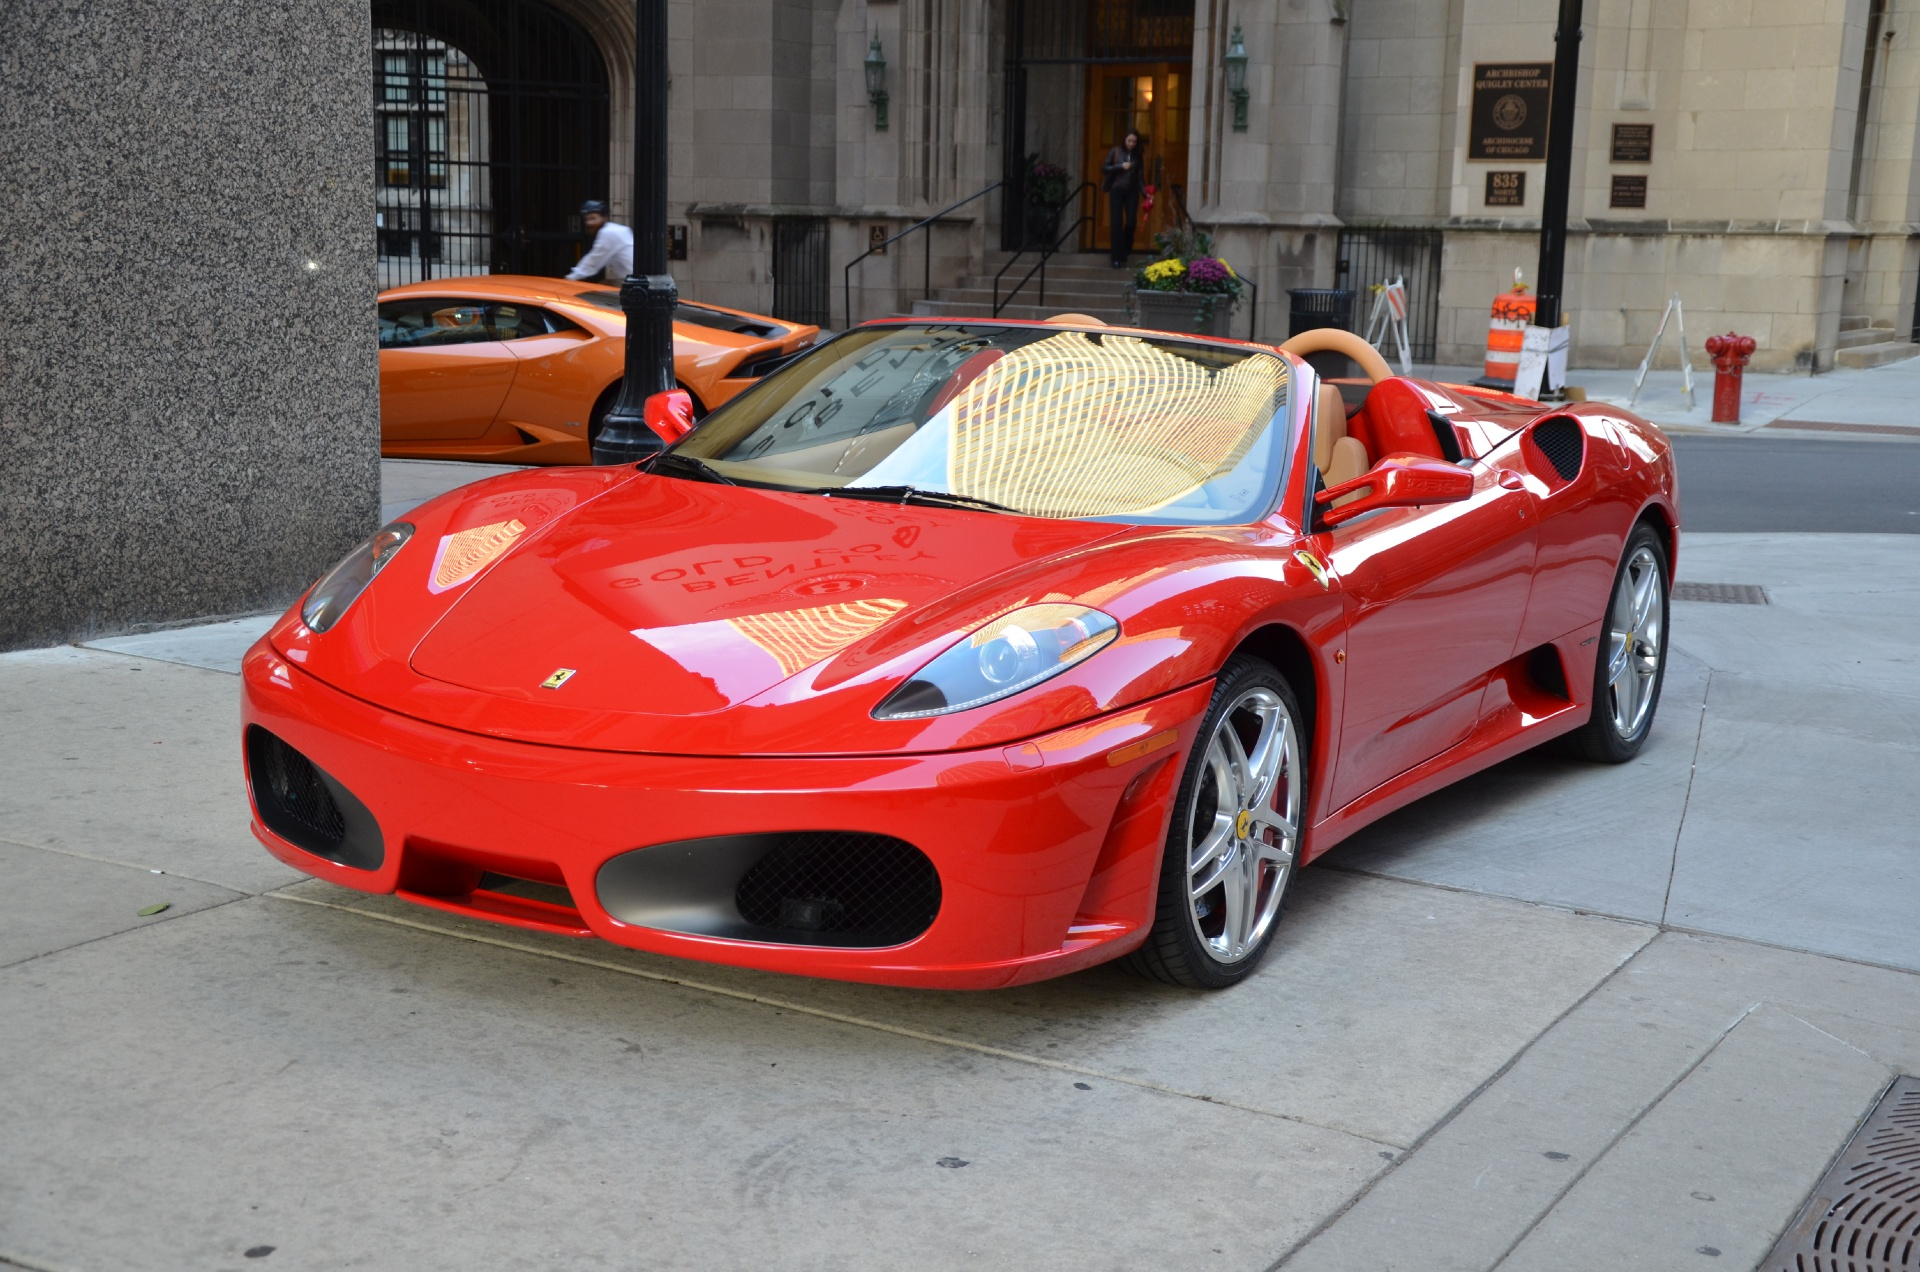 2009 ferrari f430 spider stock b706a for sale near. Black Bedroom Furniture Sets. Home Design Ideas